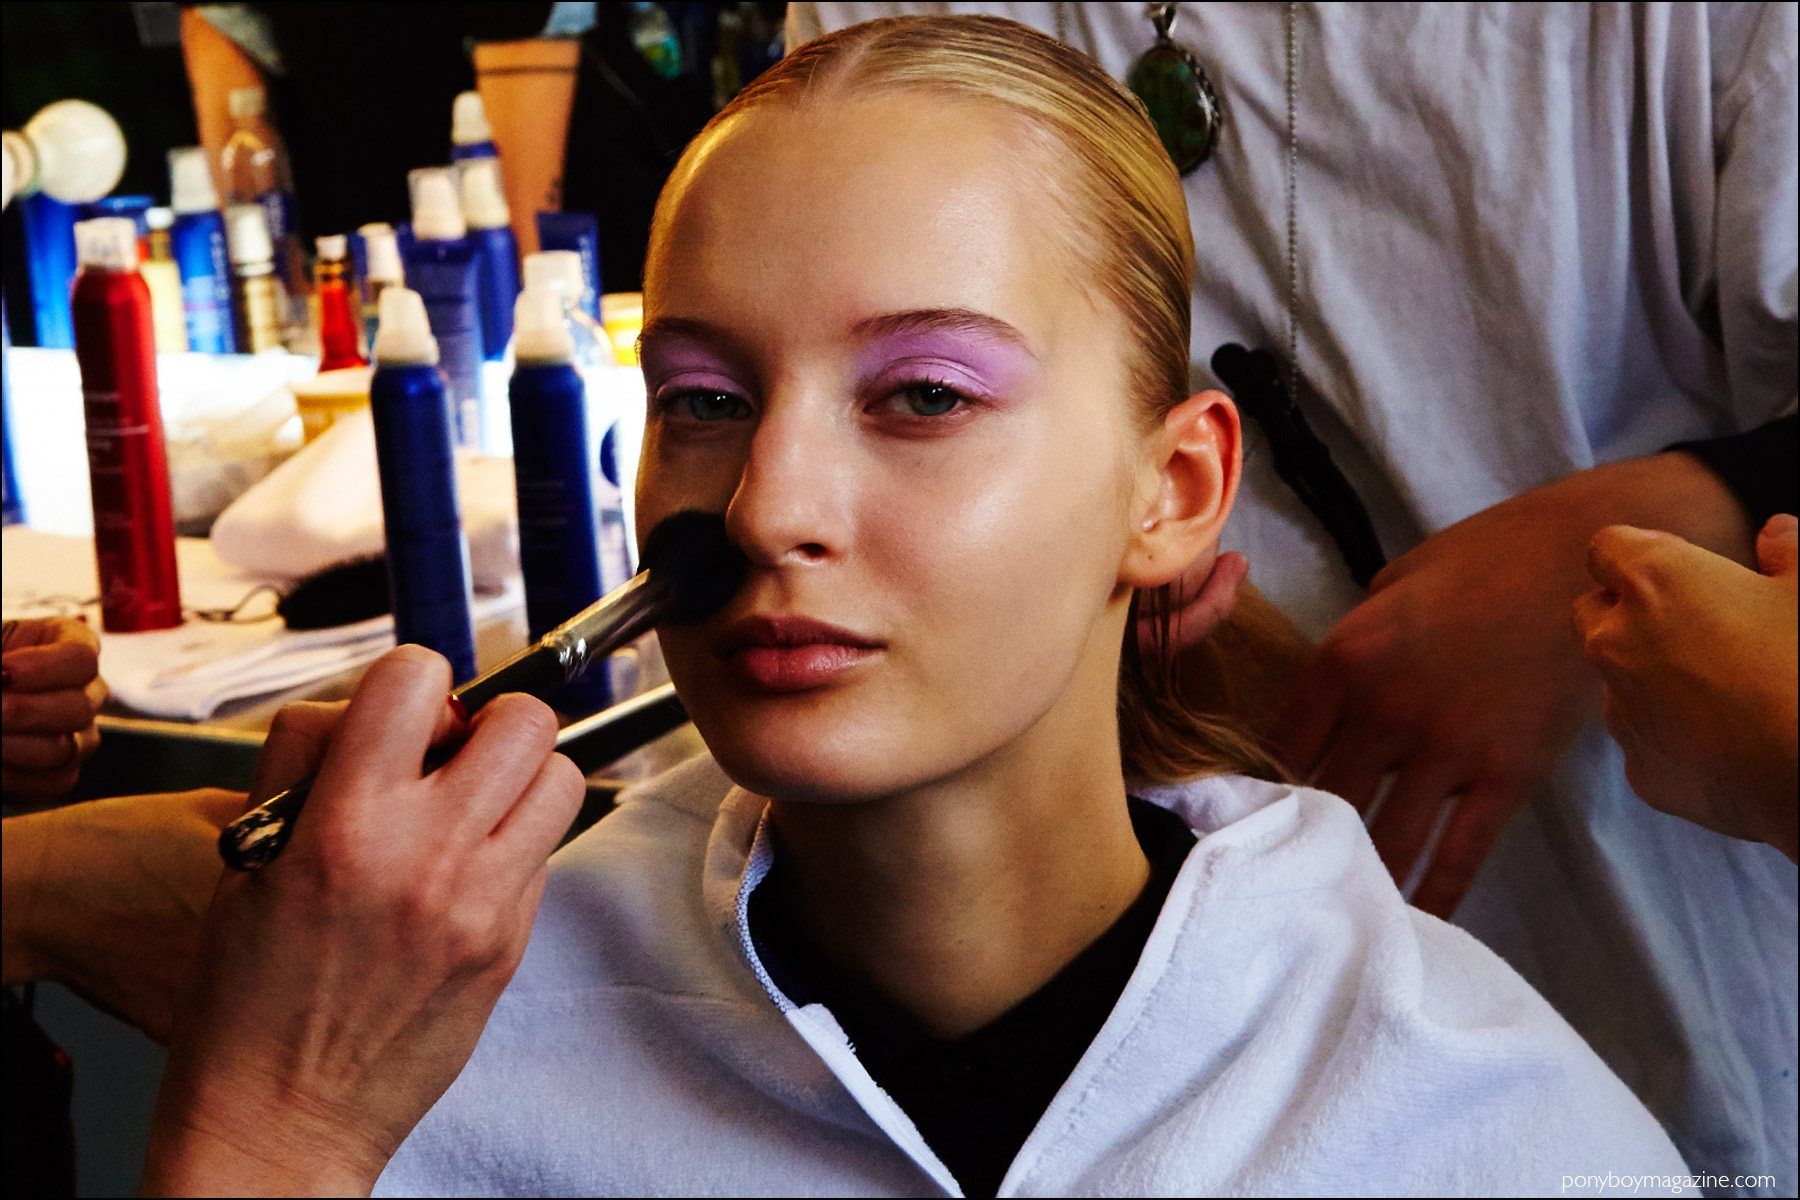 A blonde model photographed backstage in makeup, for Milly F/W16. Photography by Alexander Thompson for Ponyboy magazine NY.